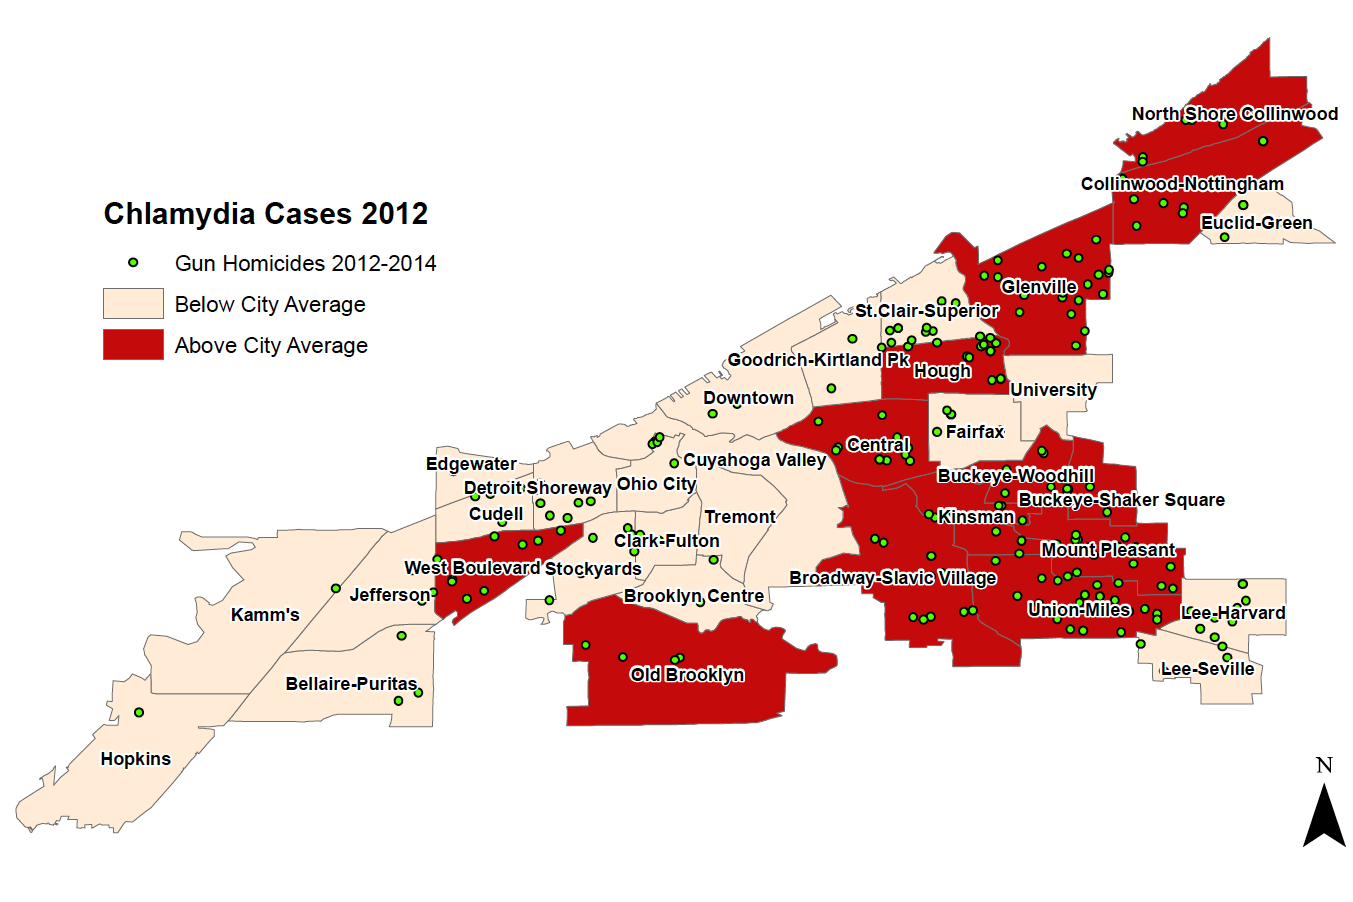 Click here to view a full PDF of Cleveland chlamydia cases mapped with a homicide overlay.